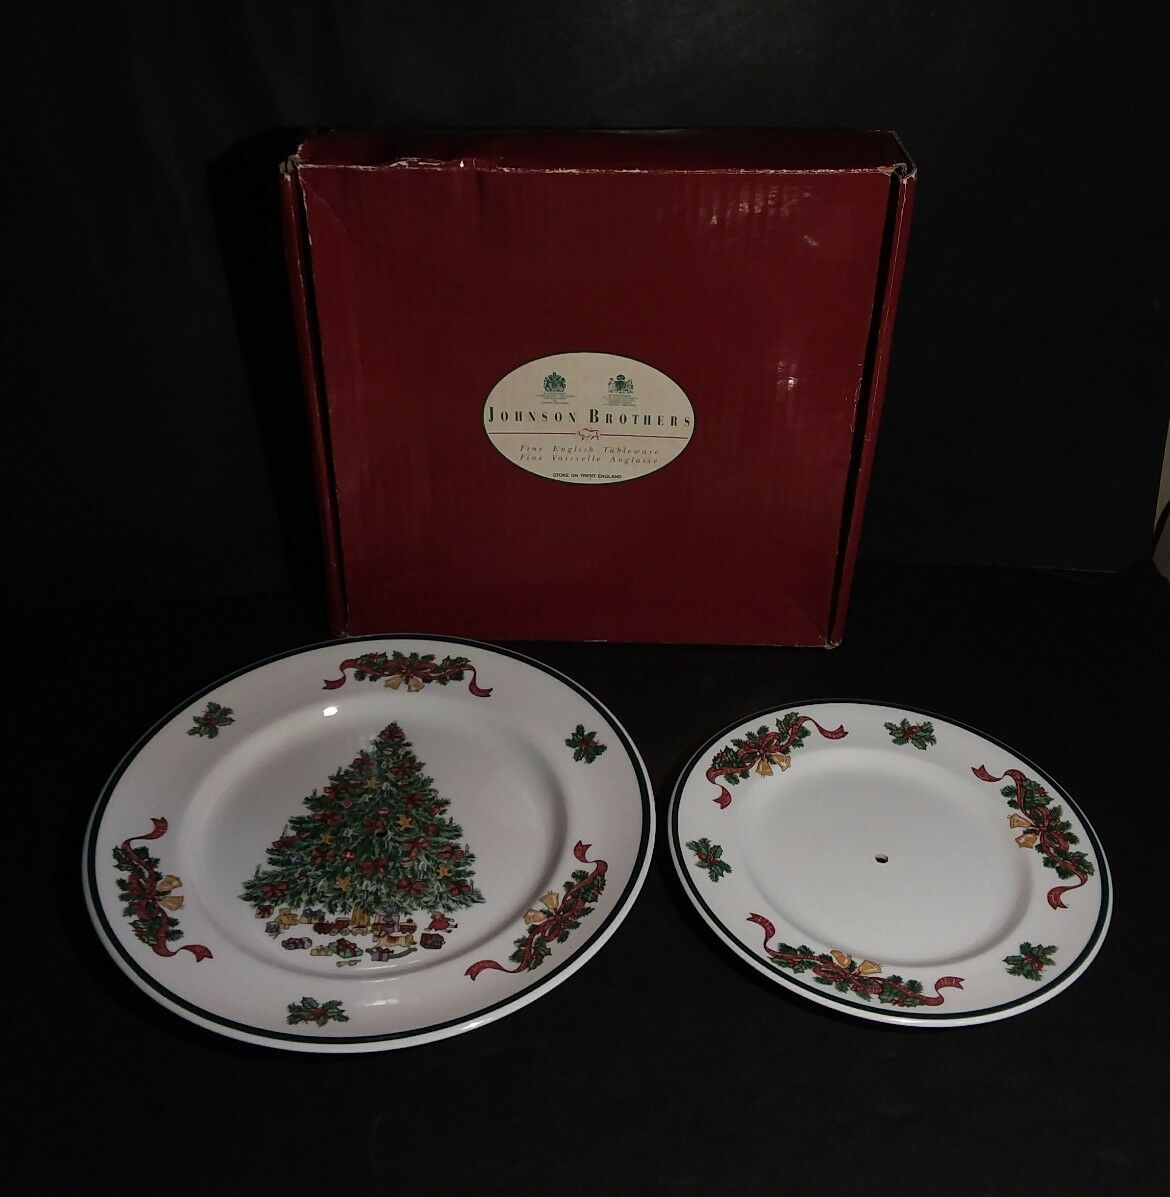 JOHNSON BROTHERS VICTORIAN Christmas Two Tier Cake Stand Plates Only ...